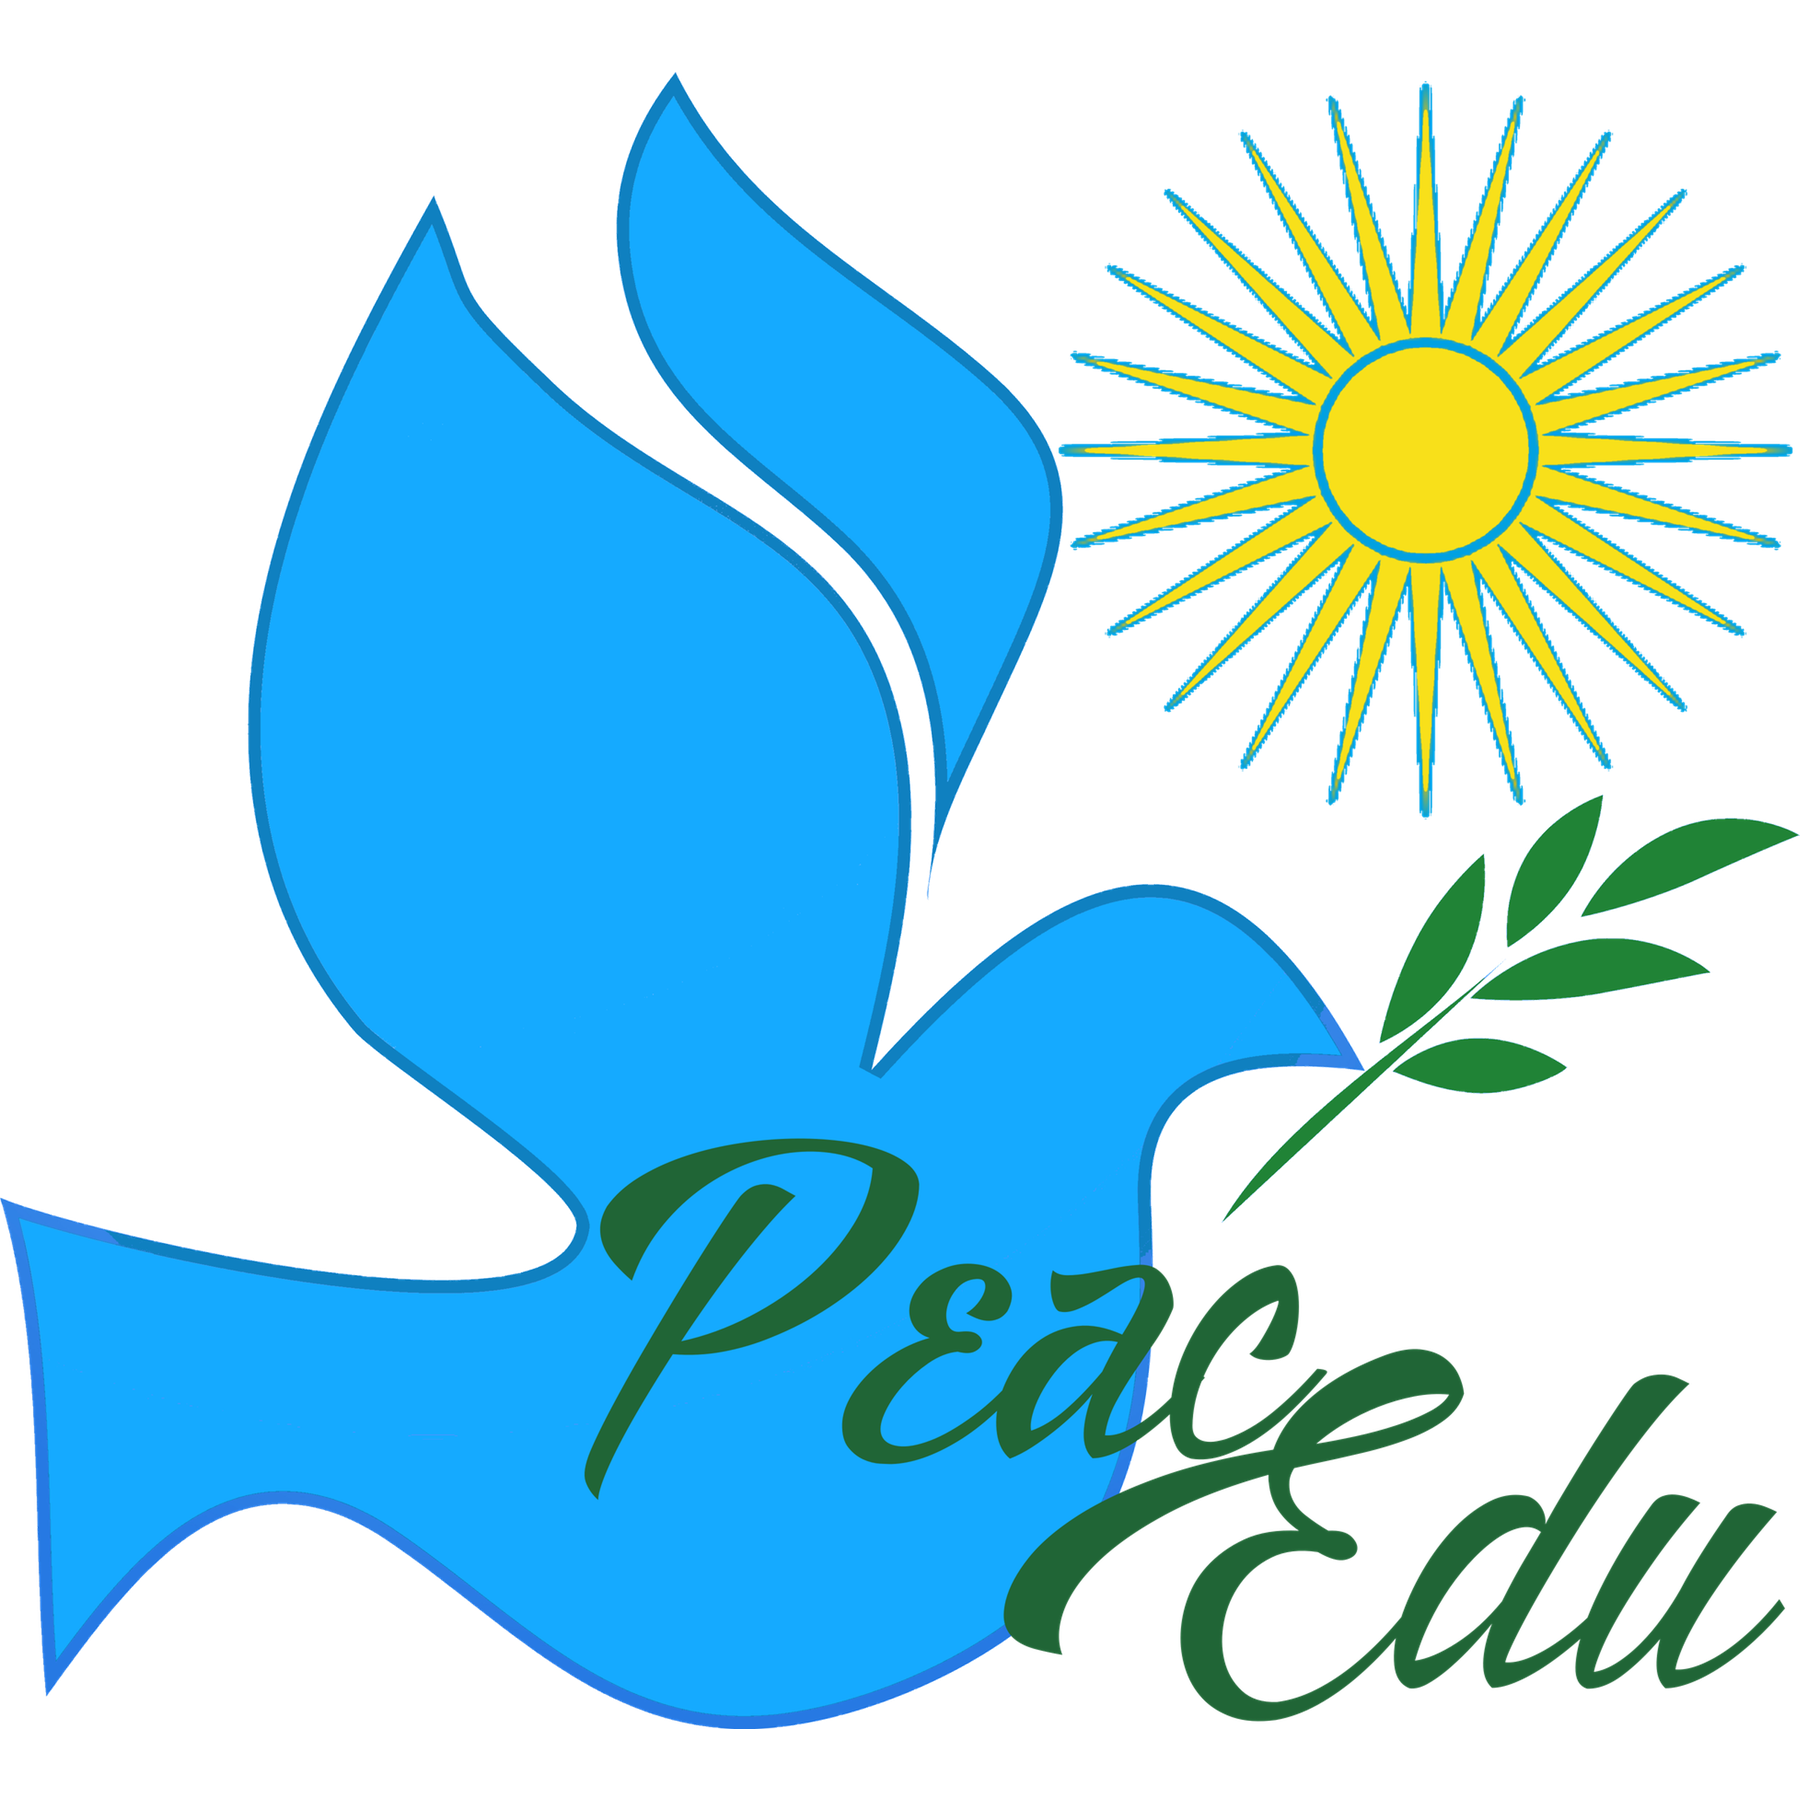 Peacedu.png